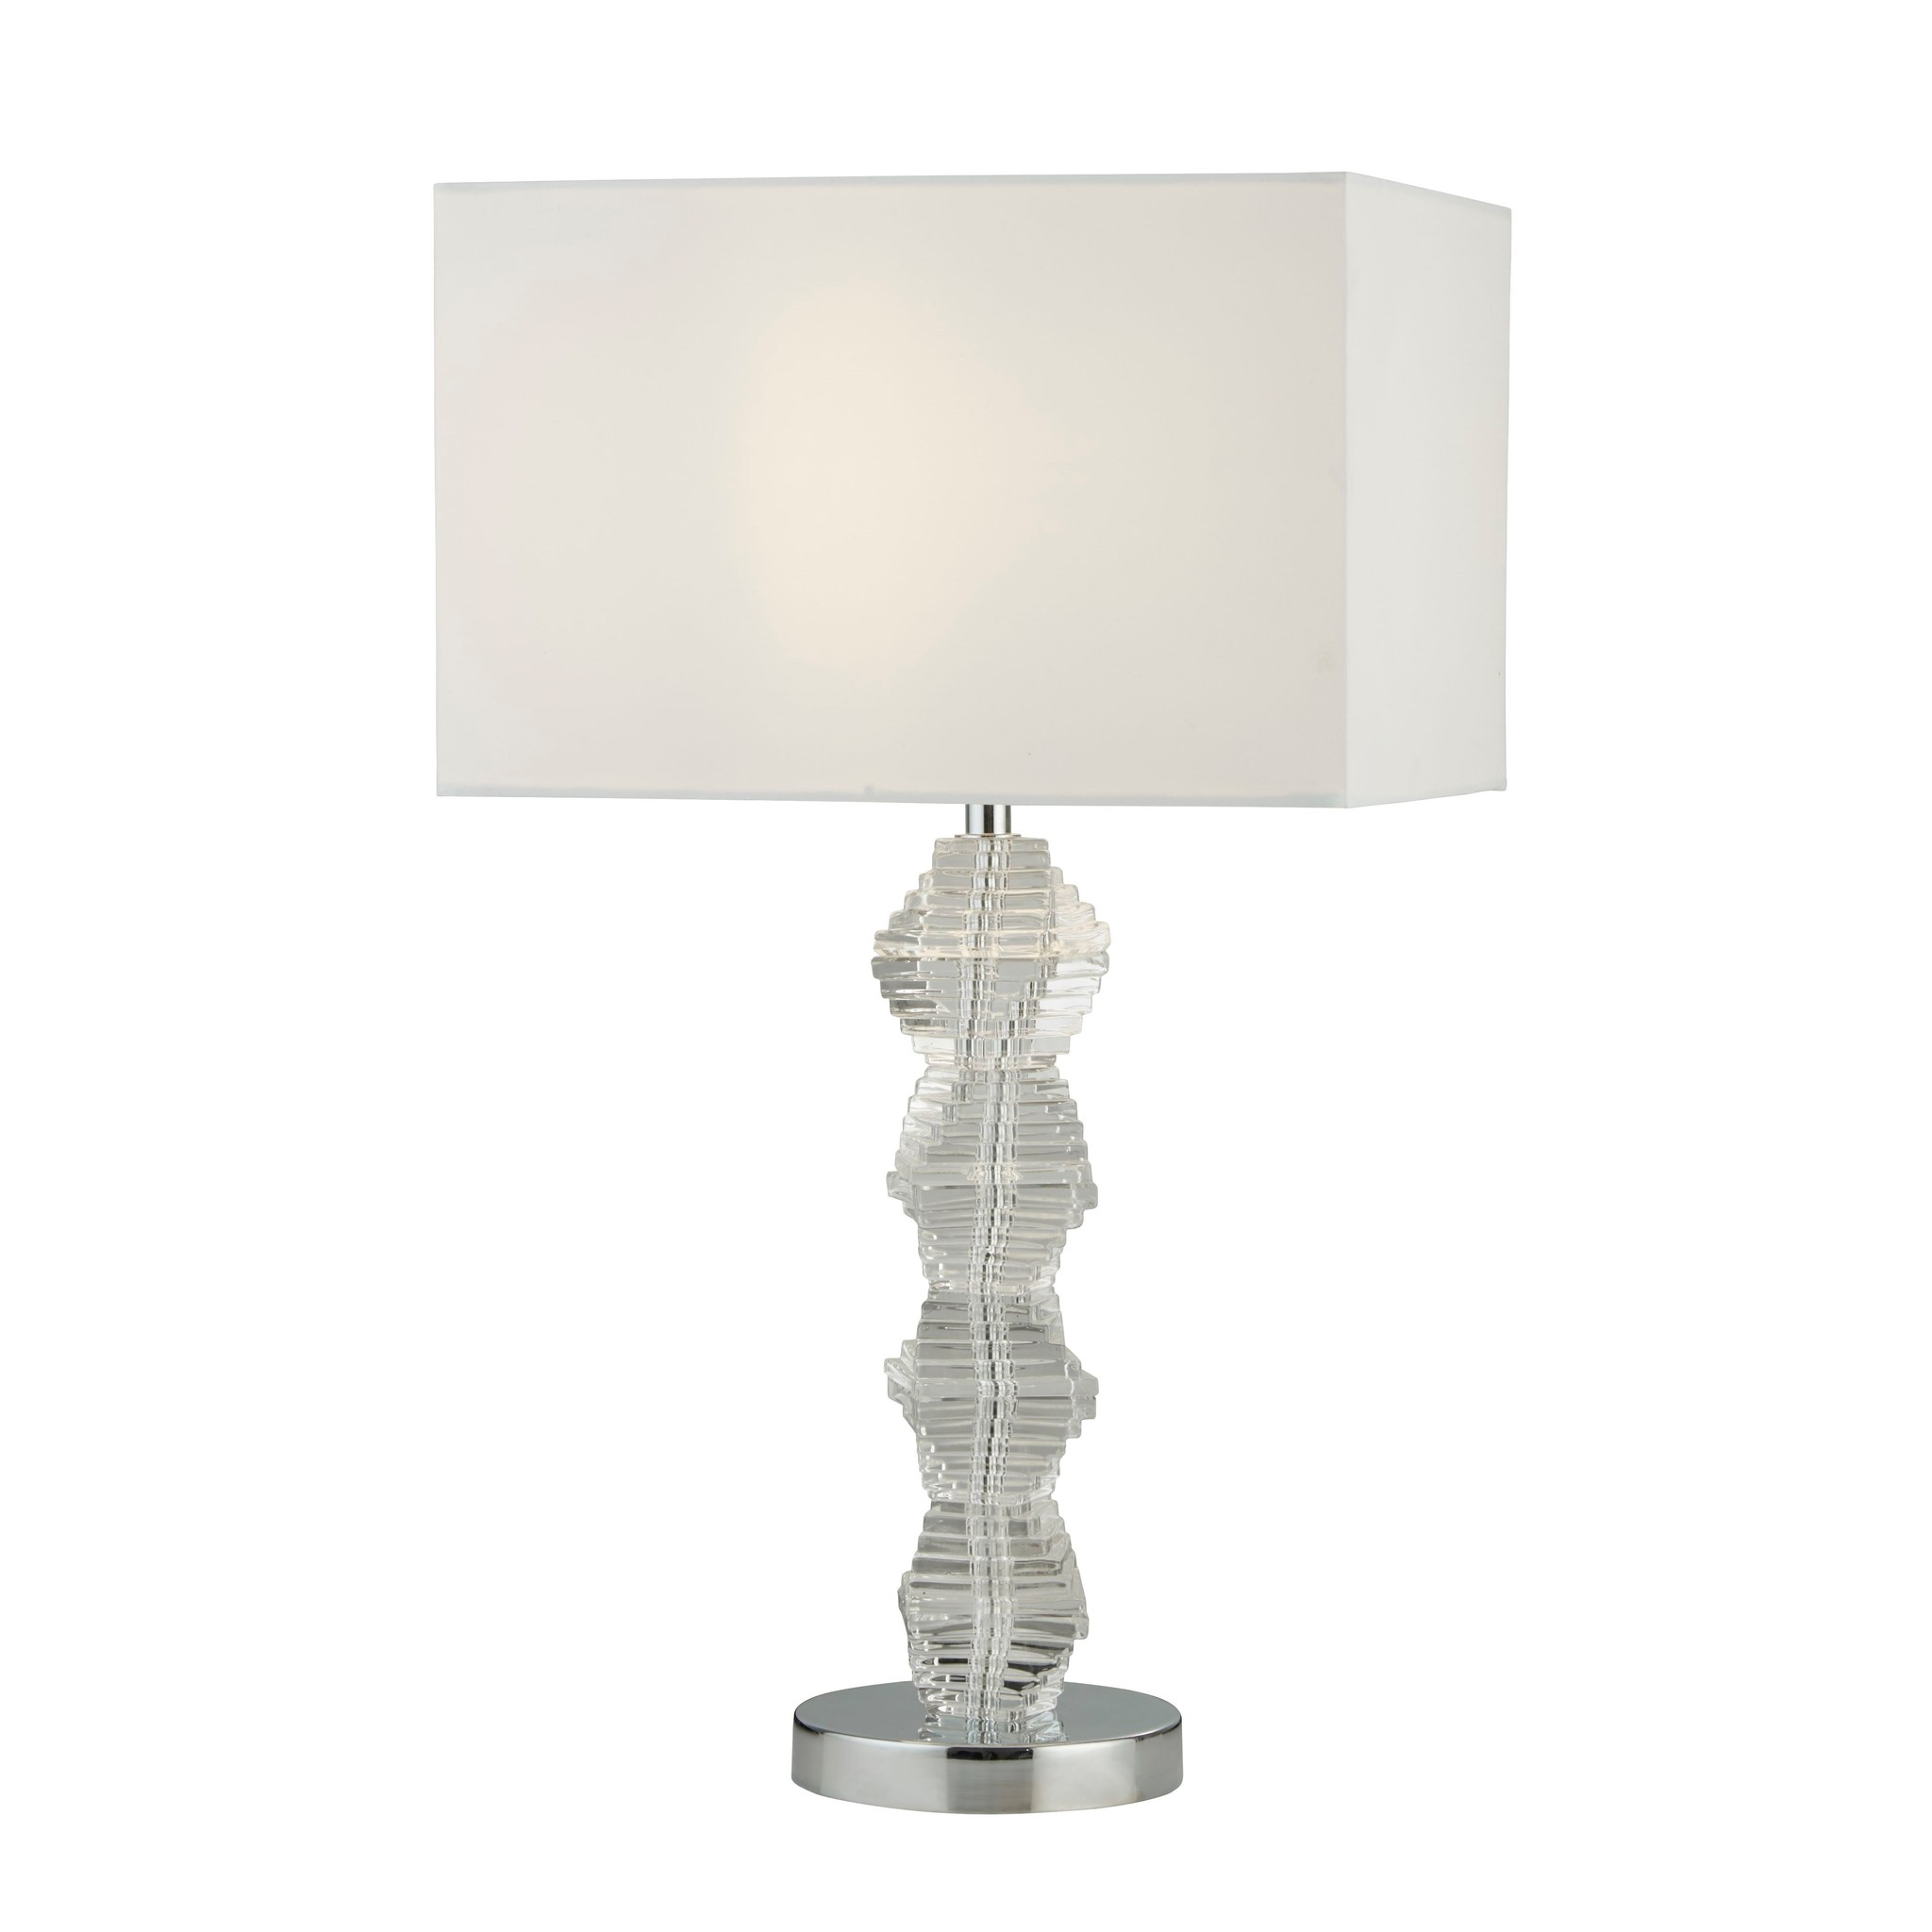 Modern Classic Double Helix Table Lamp Polished Chrome Lightbox